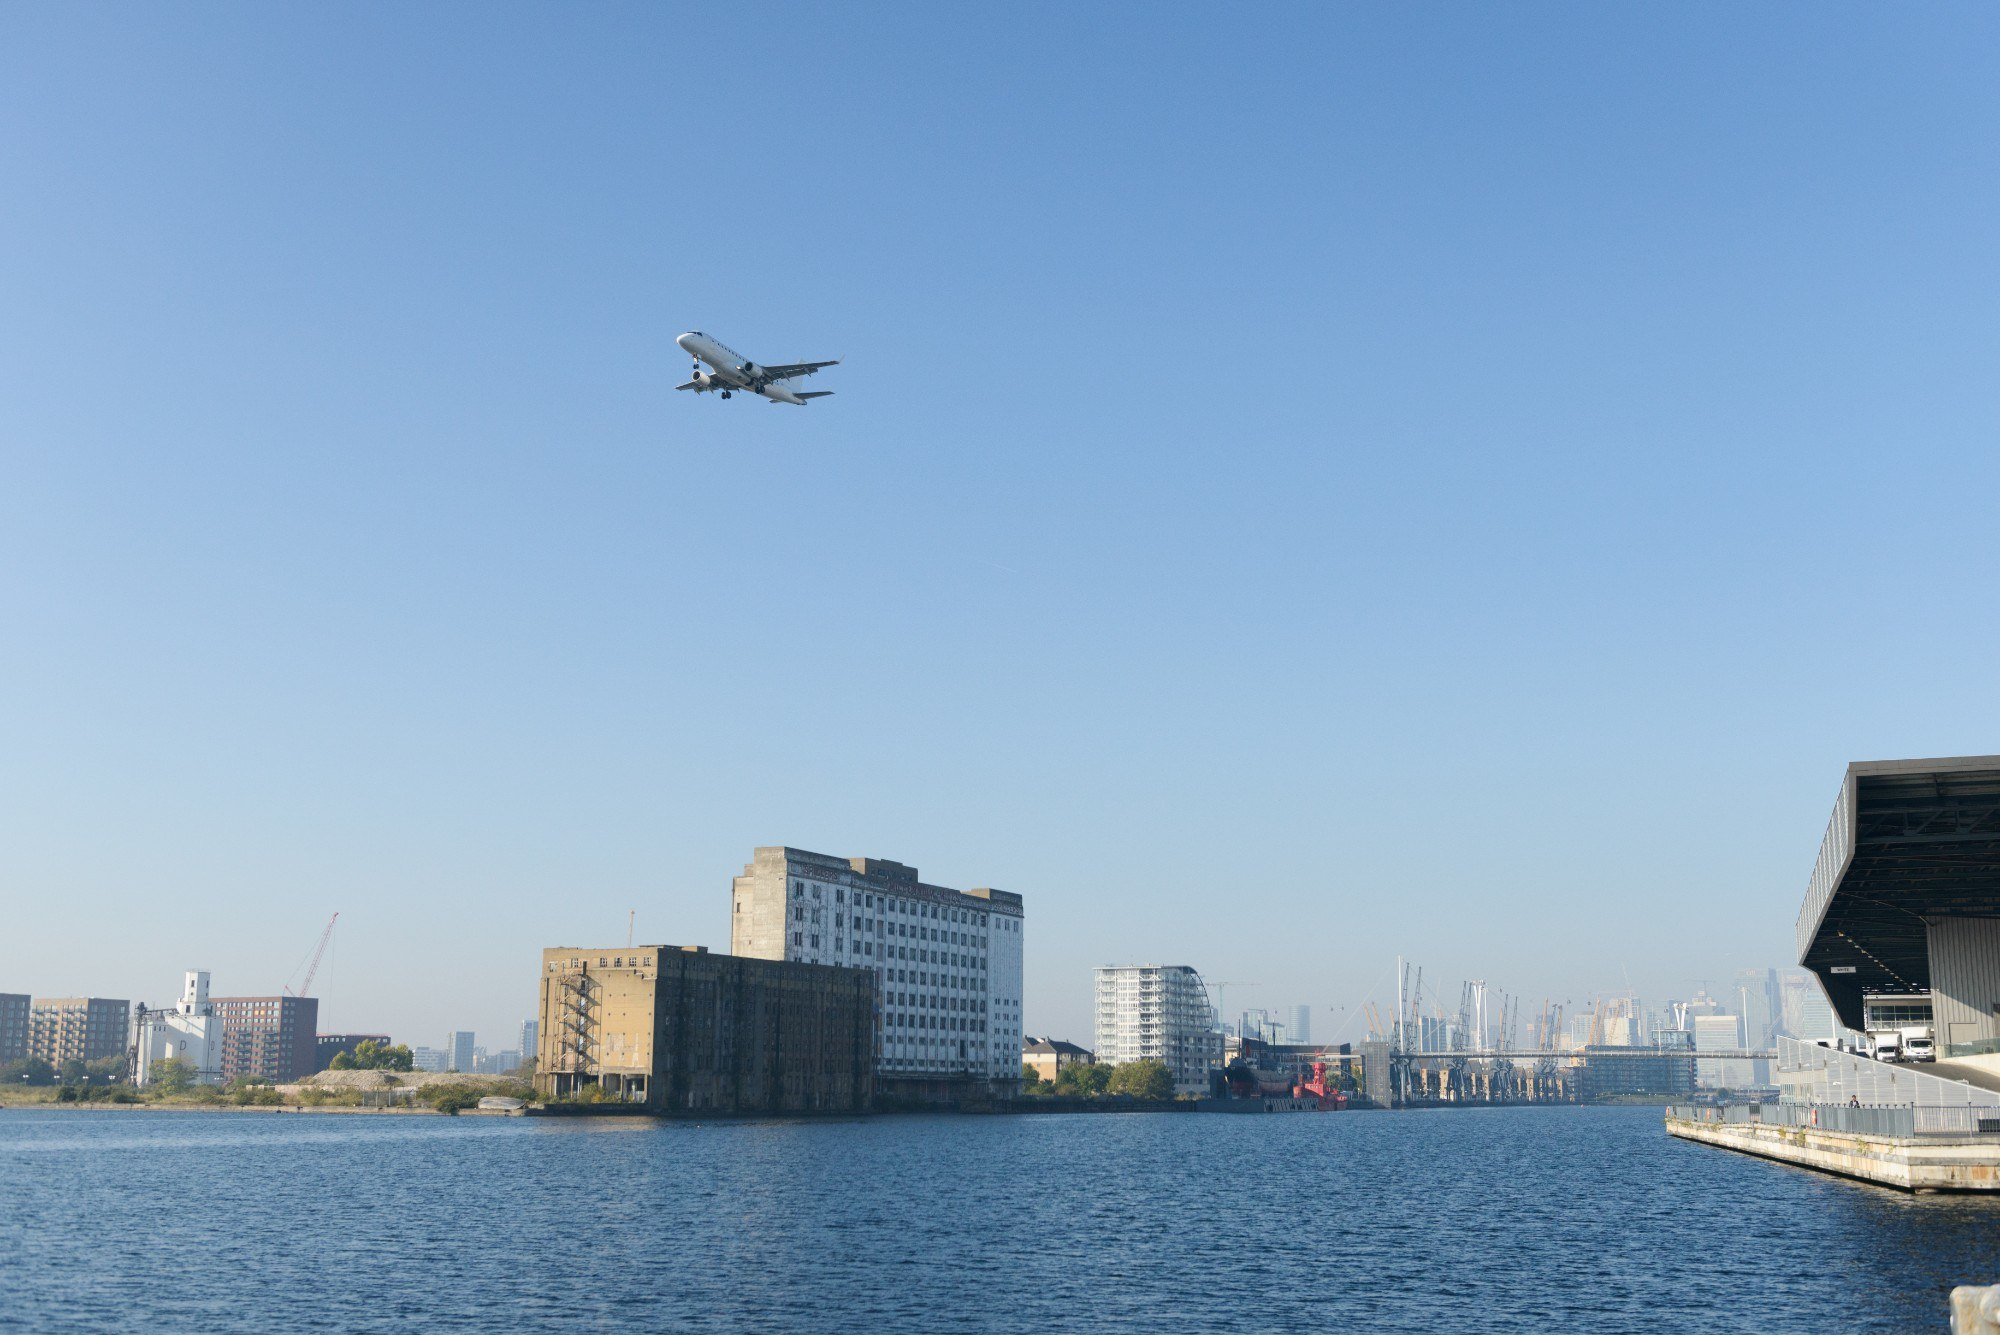 A plane flying over Millennium Mills